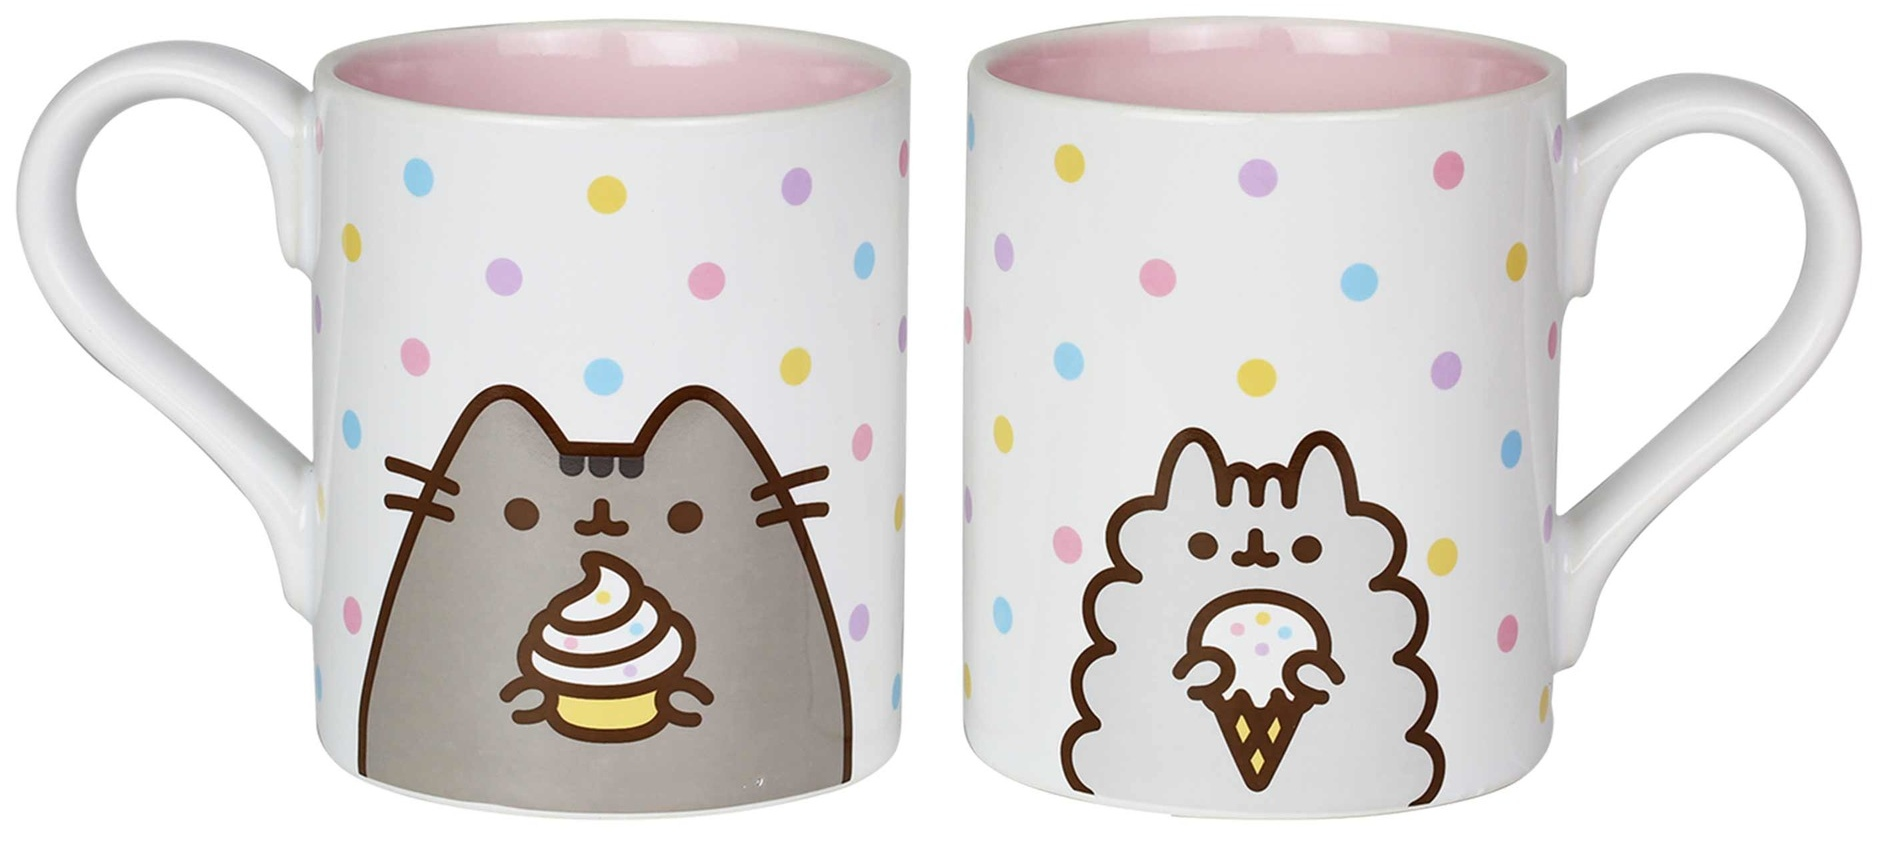 Pusheen by Our Name Is Mud 6004626 Stormy Mug Set